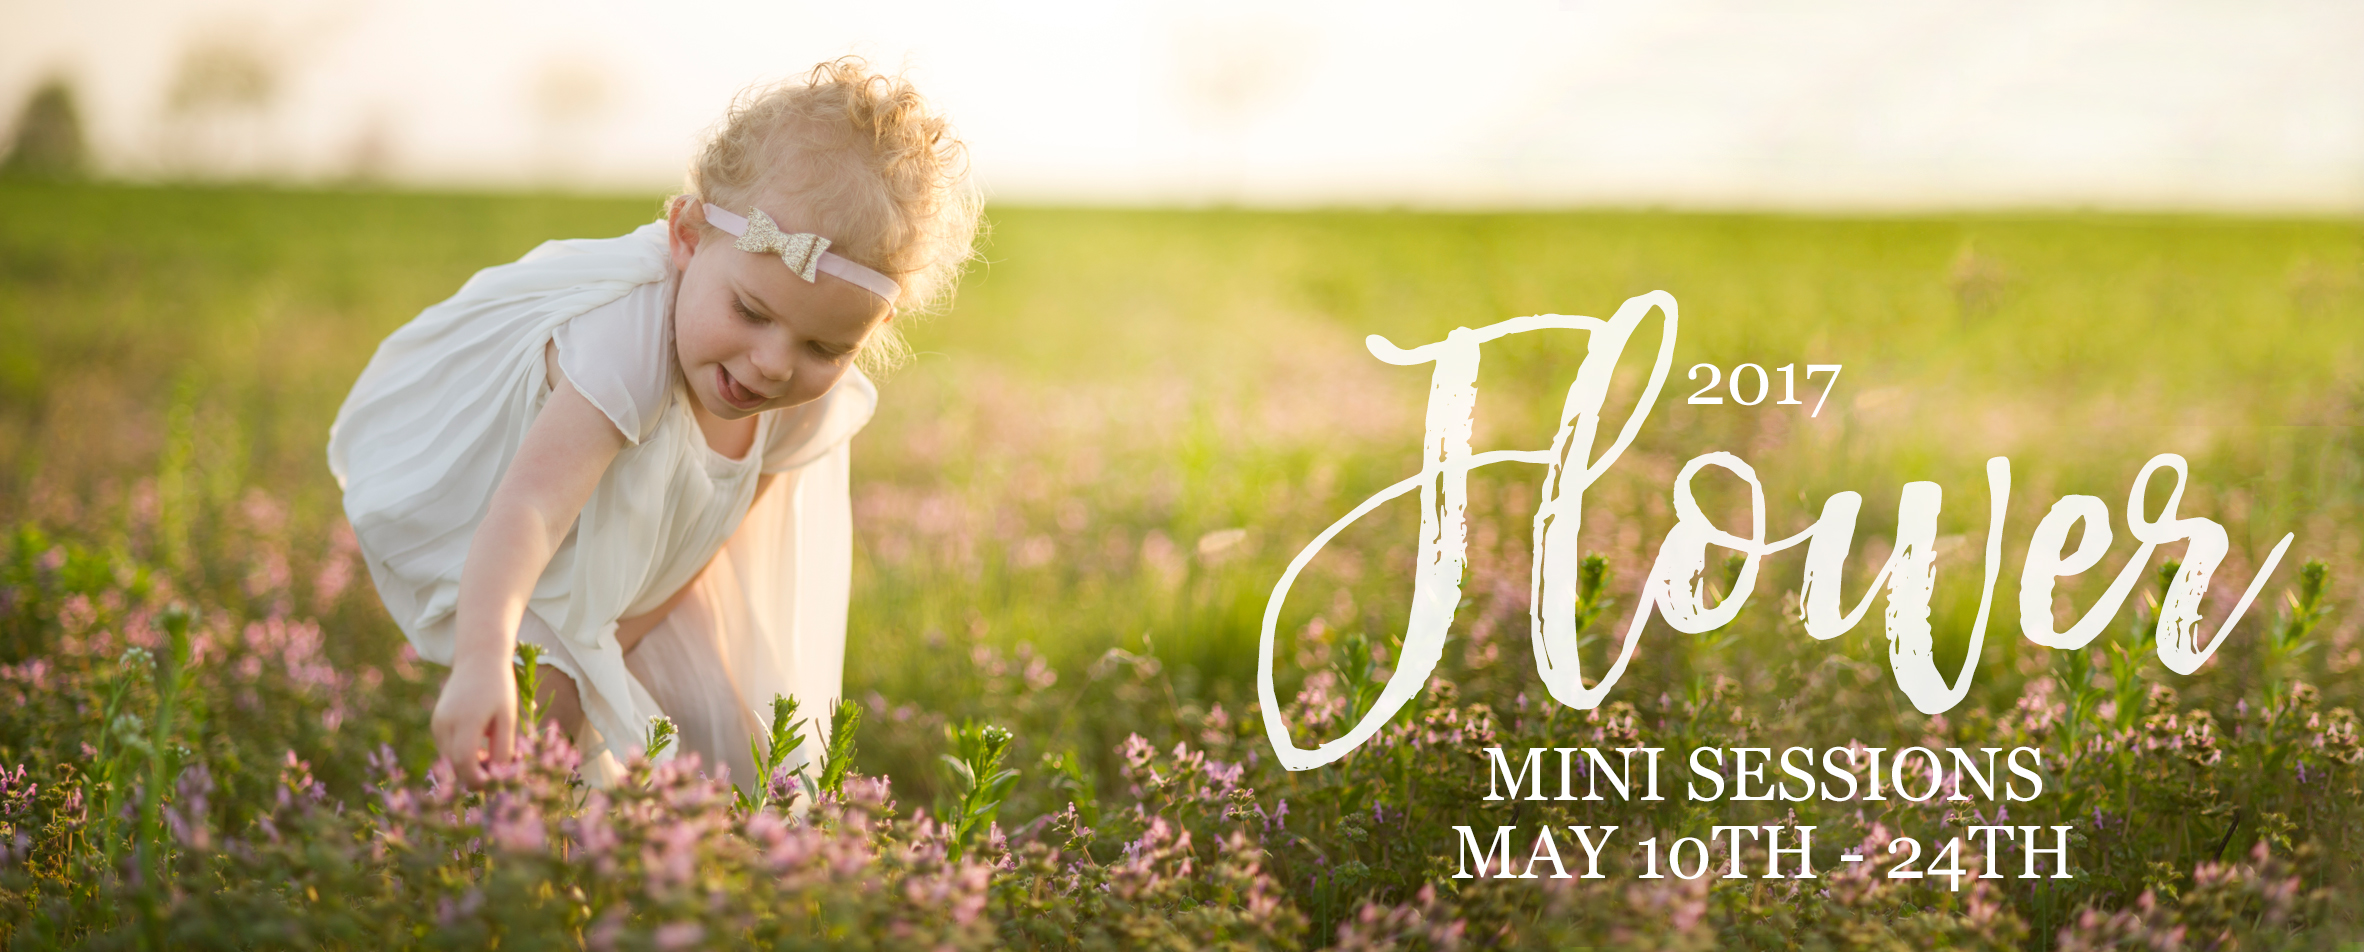 nebraska flower mini sessions dorchester ne photographer kelsey homolka nerud